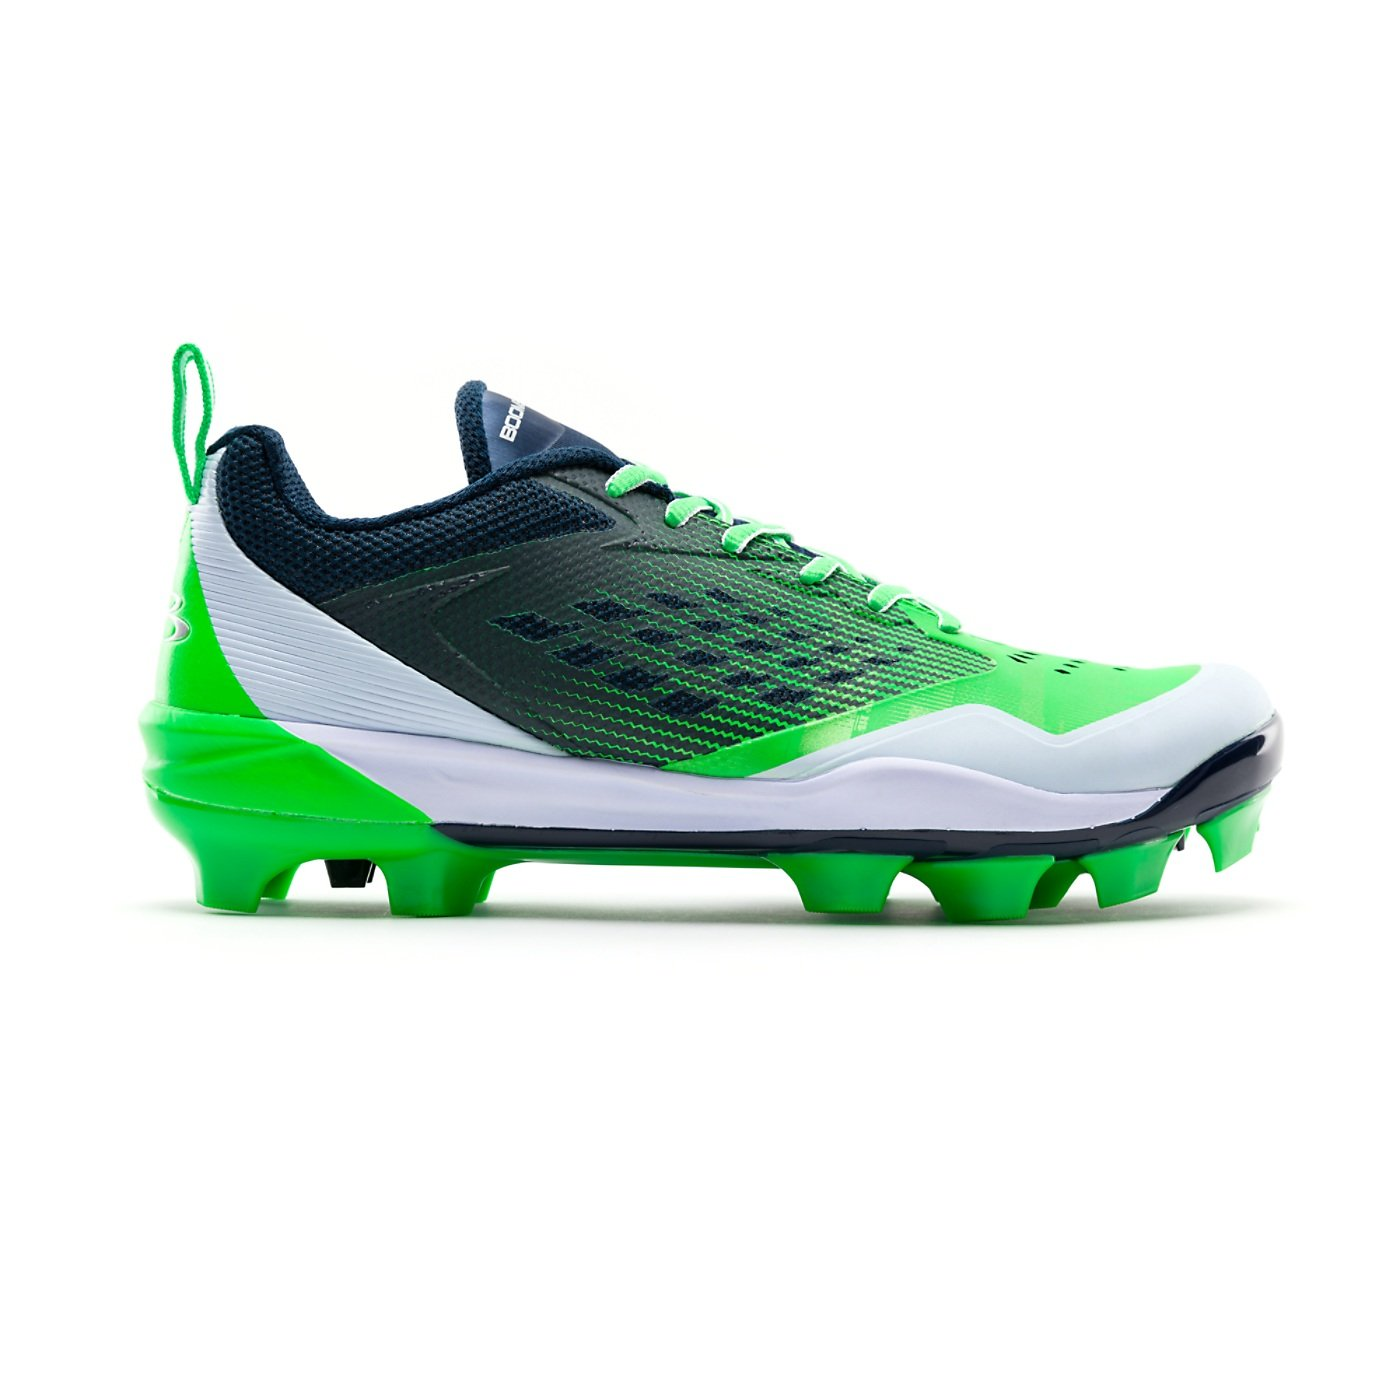 Boombah Men 's Marauderモールドクリート – 7色オプション – 複数のサイズ B07BTNK3ZJ 8|Navy/Lime Green Navy/Lime Green 8